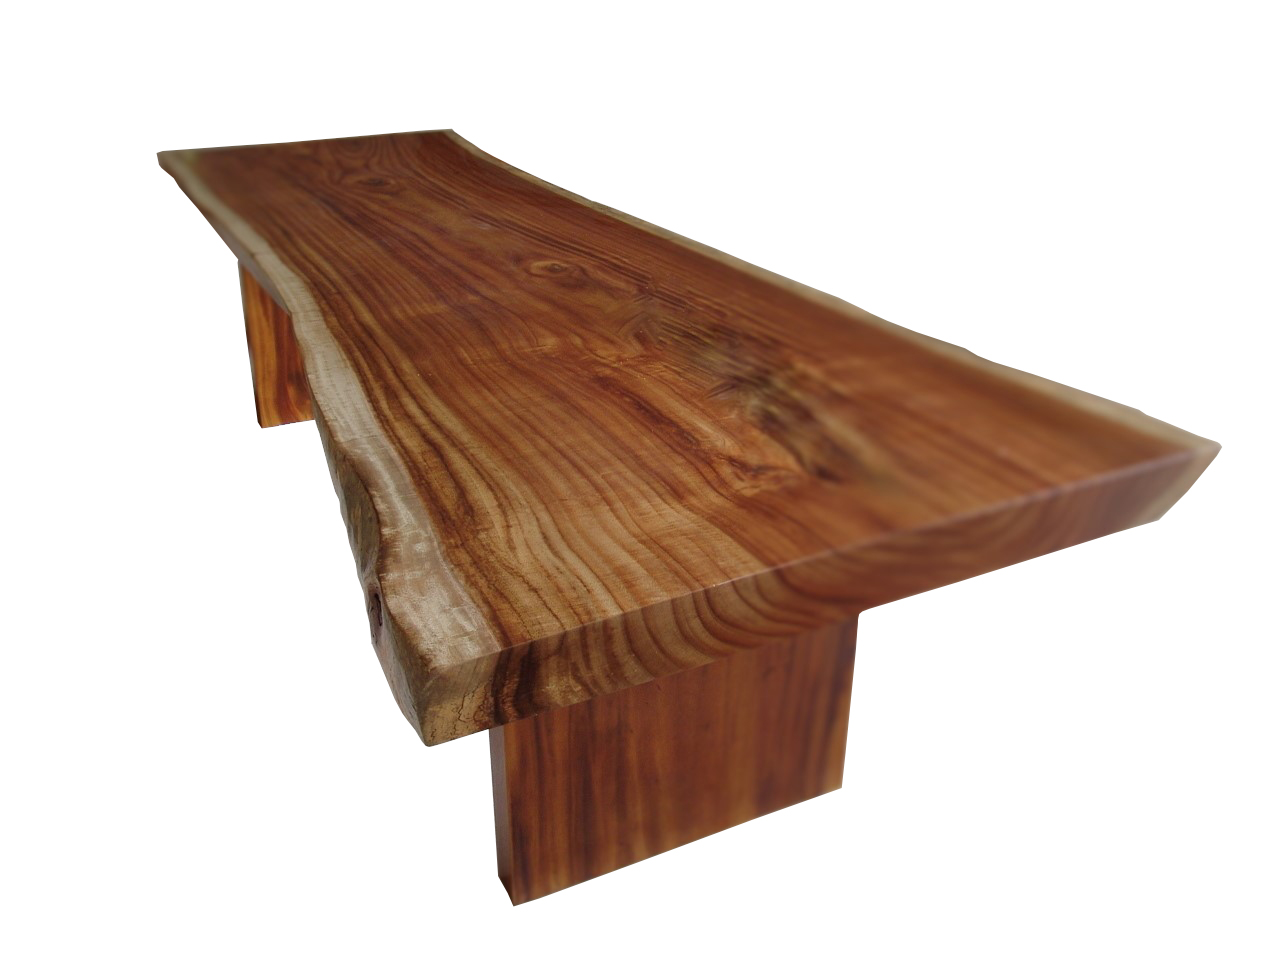 advantages of using solid wood furniture goodworksfurniture 17378 | cute solid wood furniture stores monsoonwood table uwwwtfs